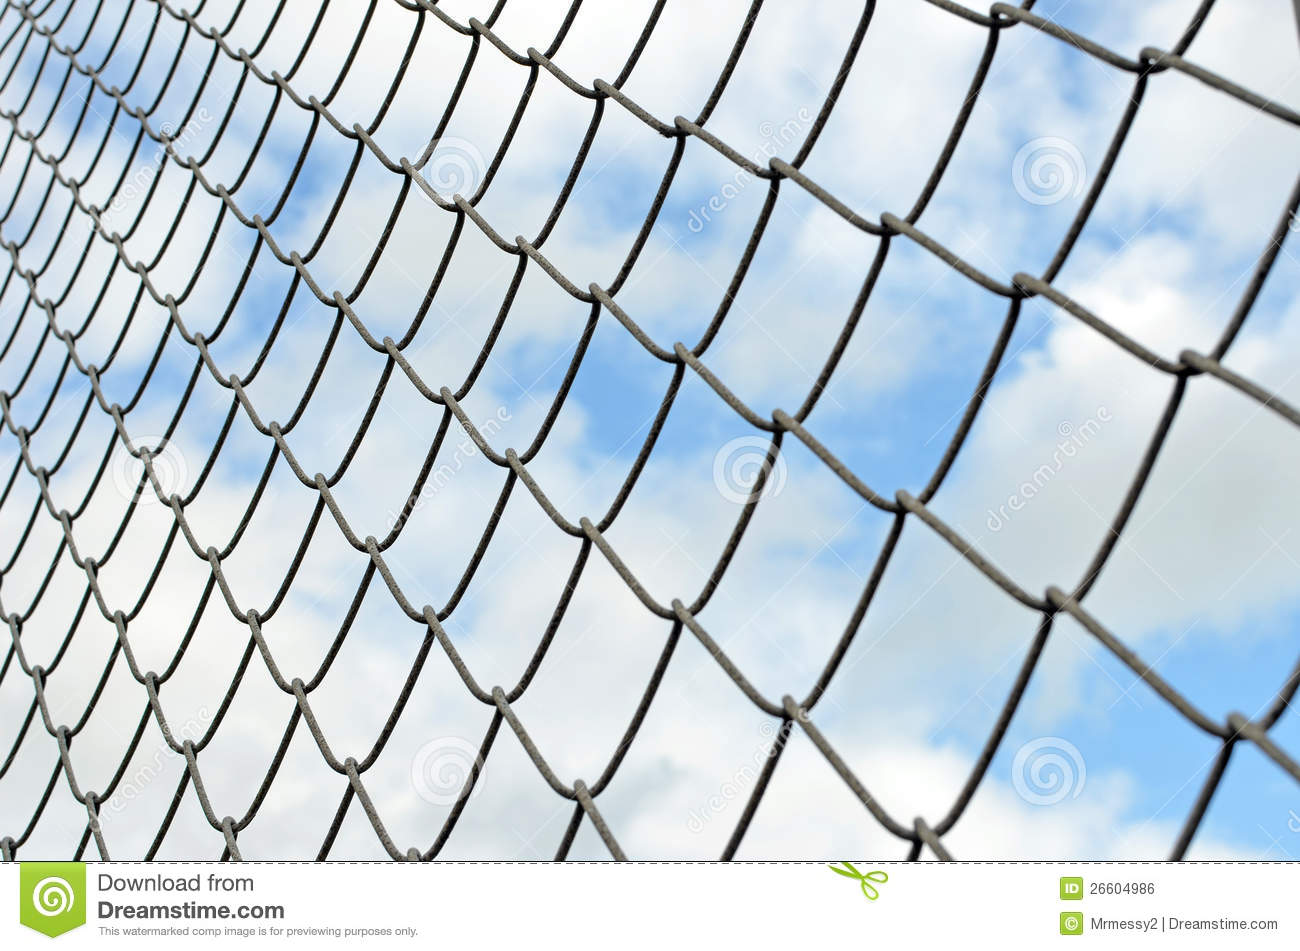 Chainlink Fence Royalty Free Stock Image   Image  26604986